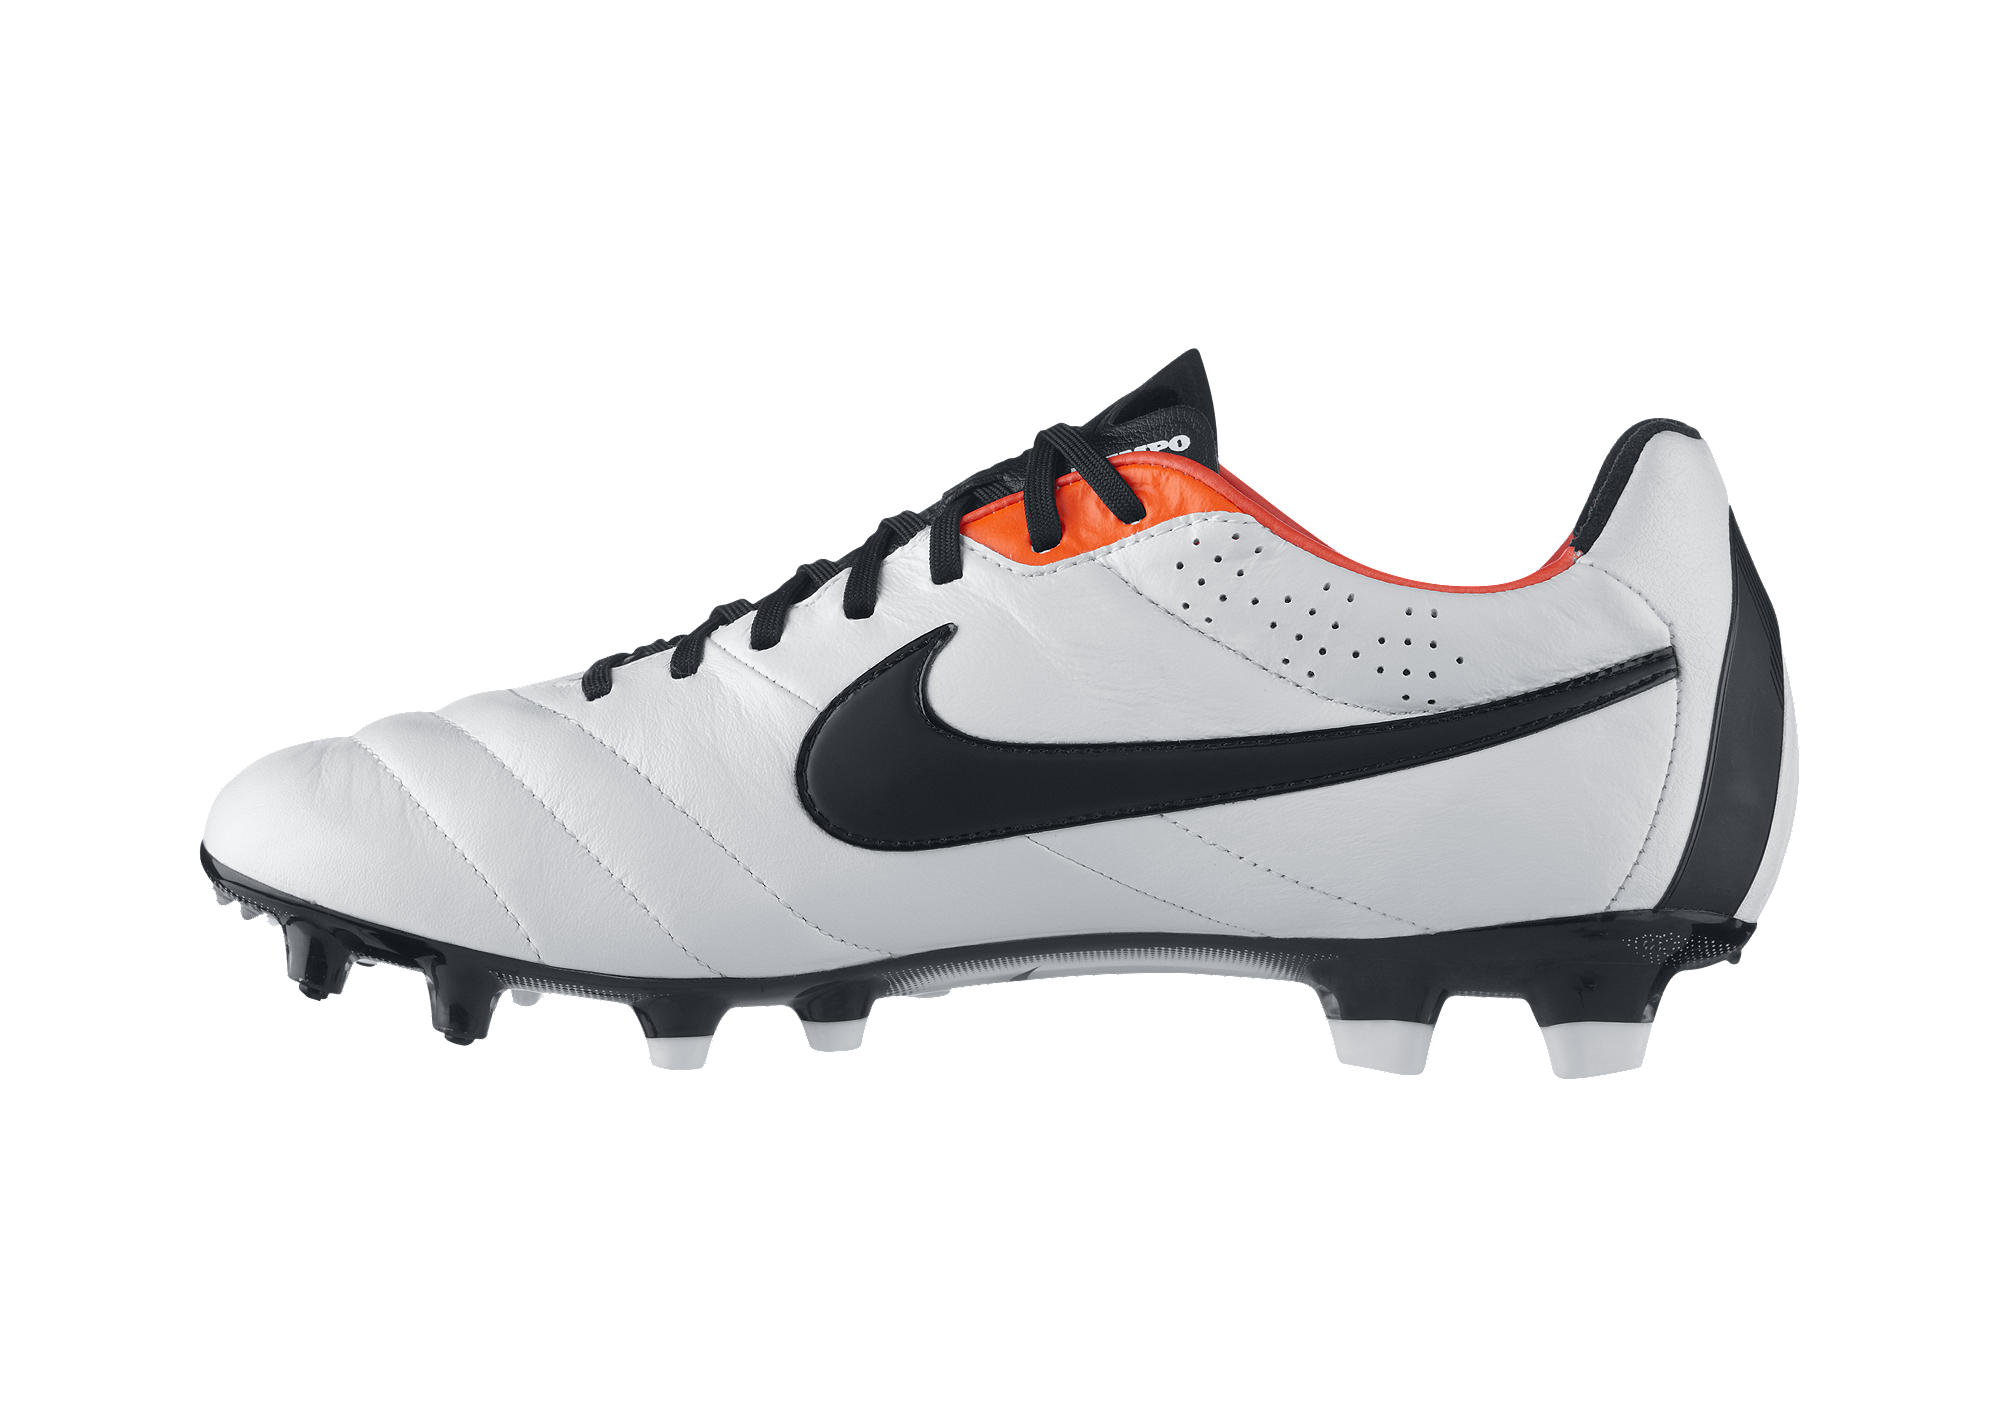 football shoes clipart - photo #41